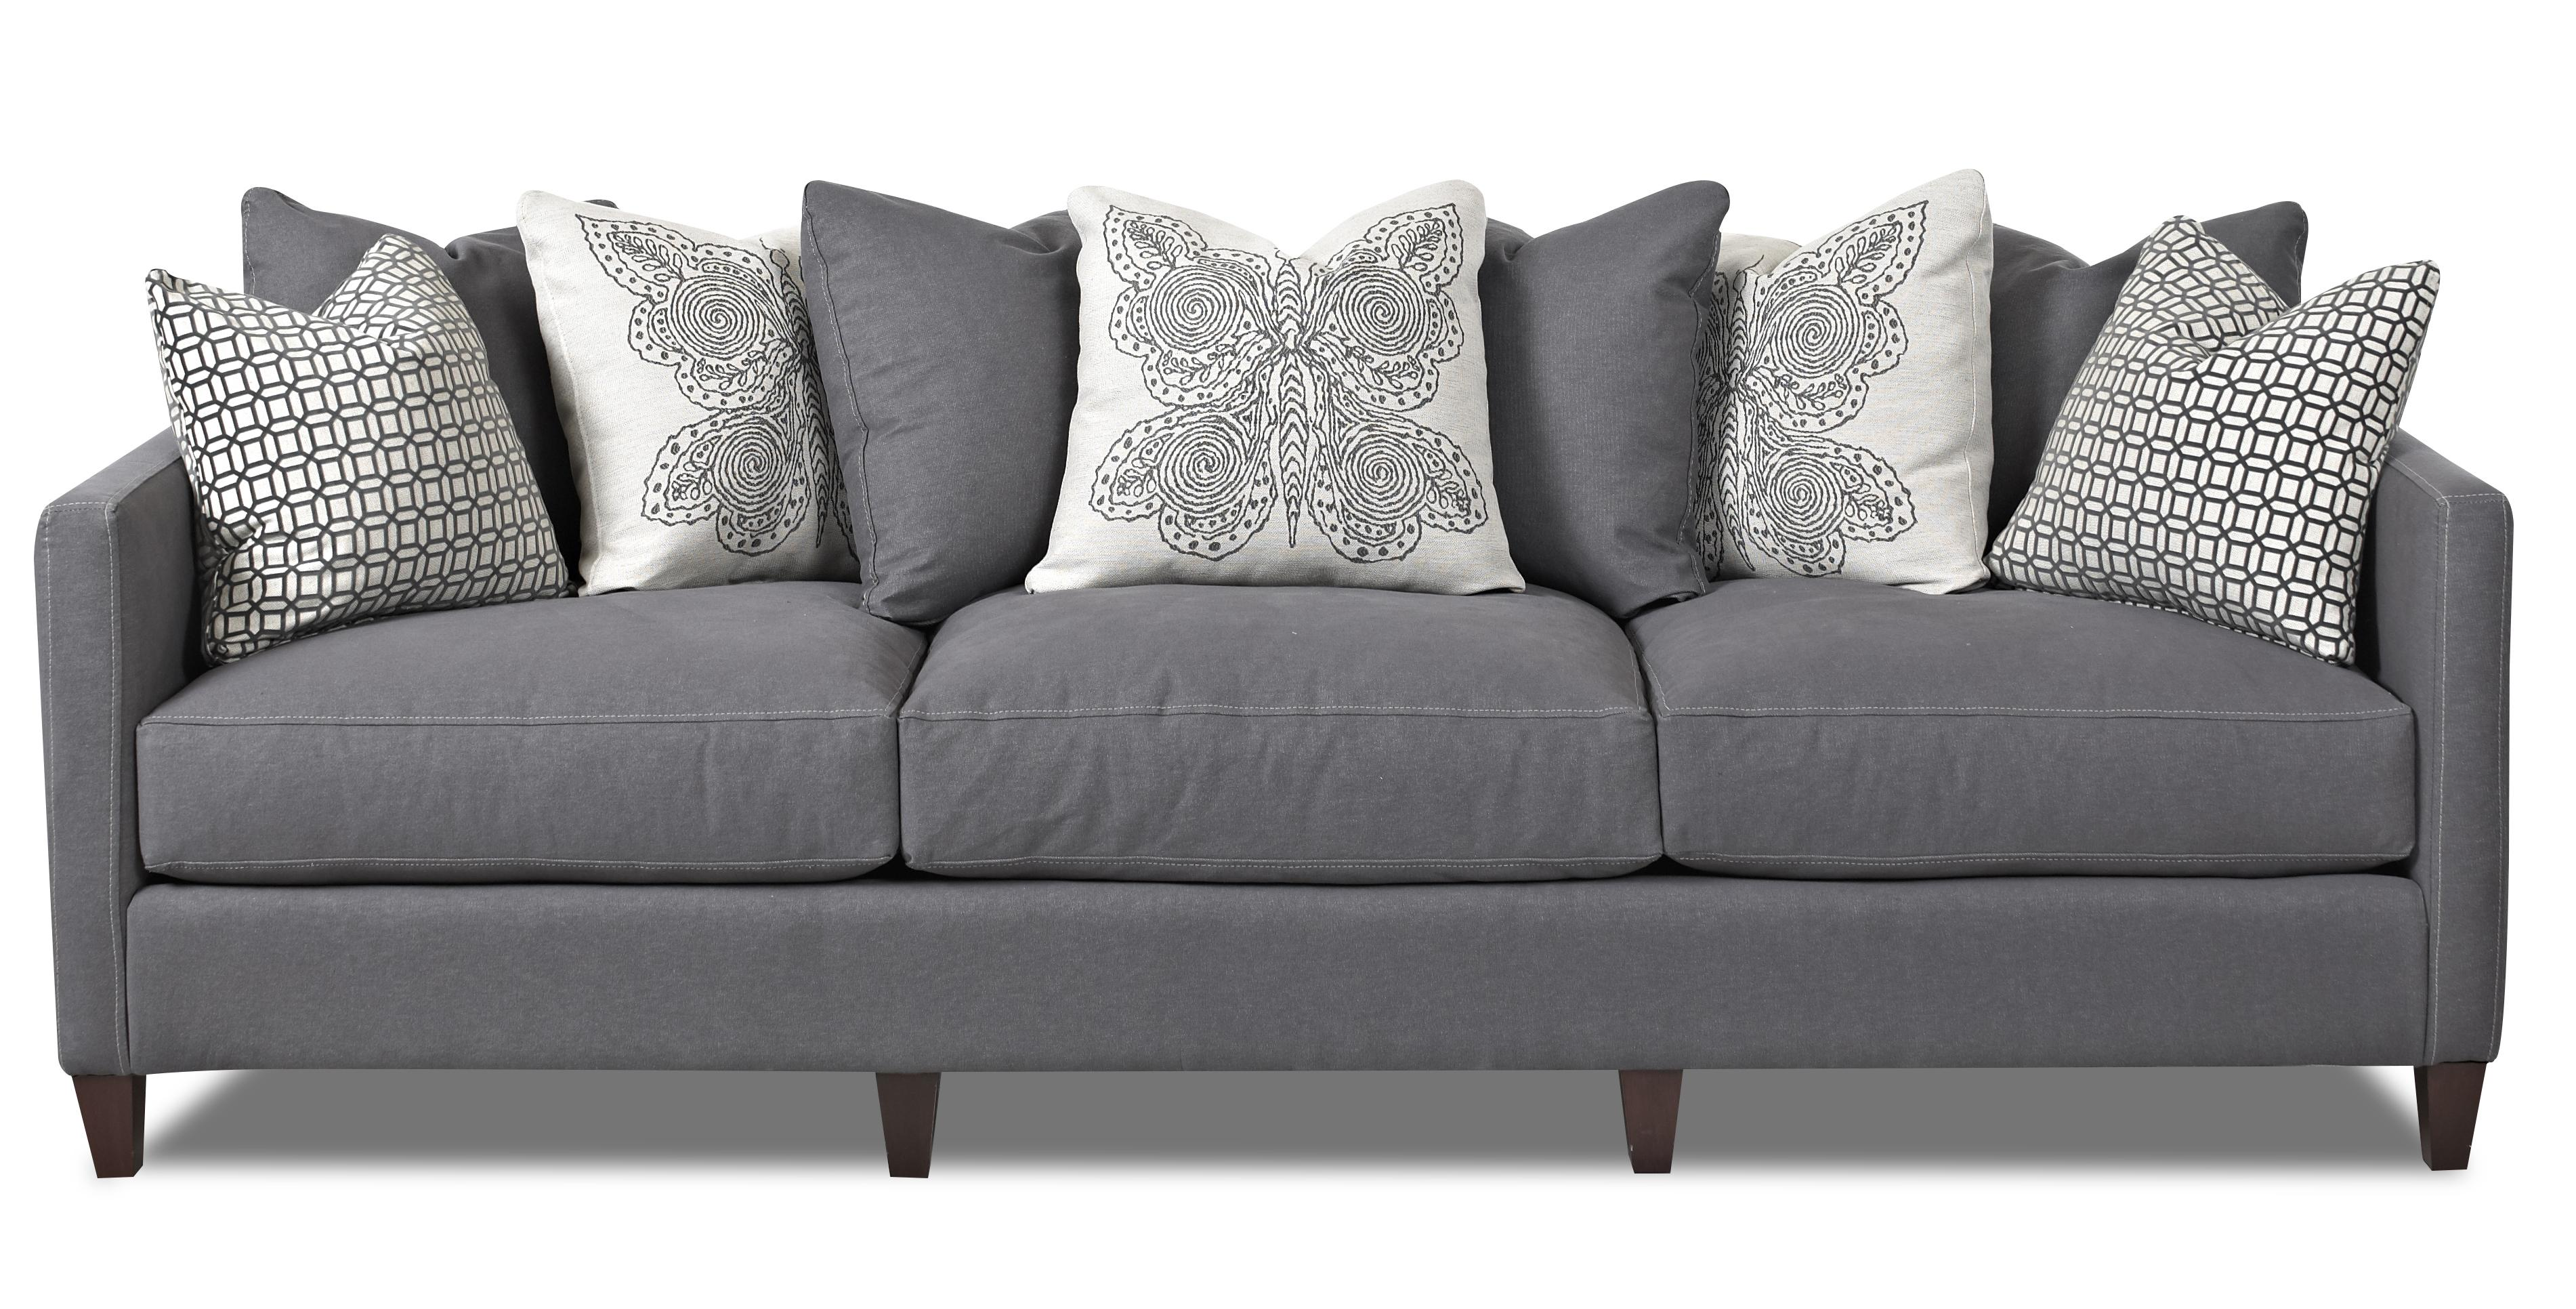 Gray Sofa And Sofa Pillows